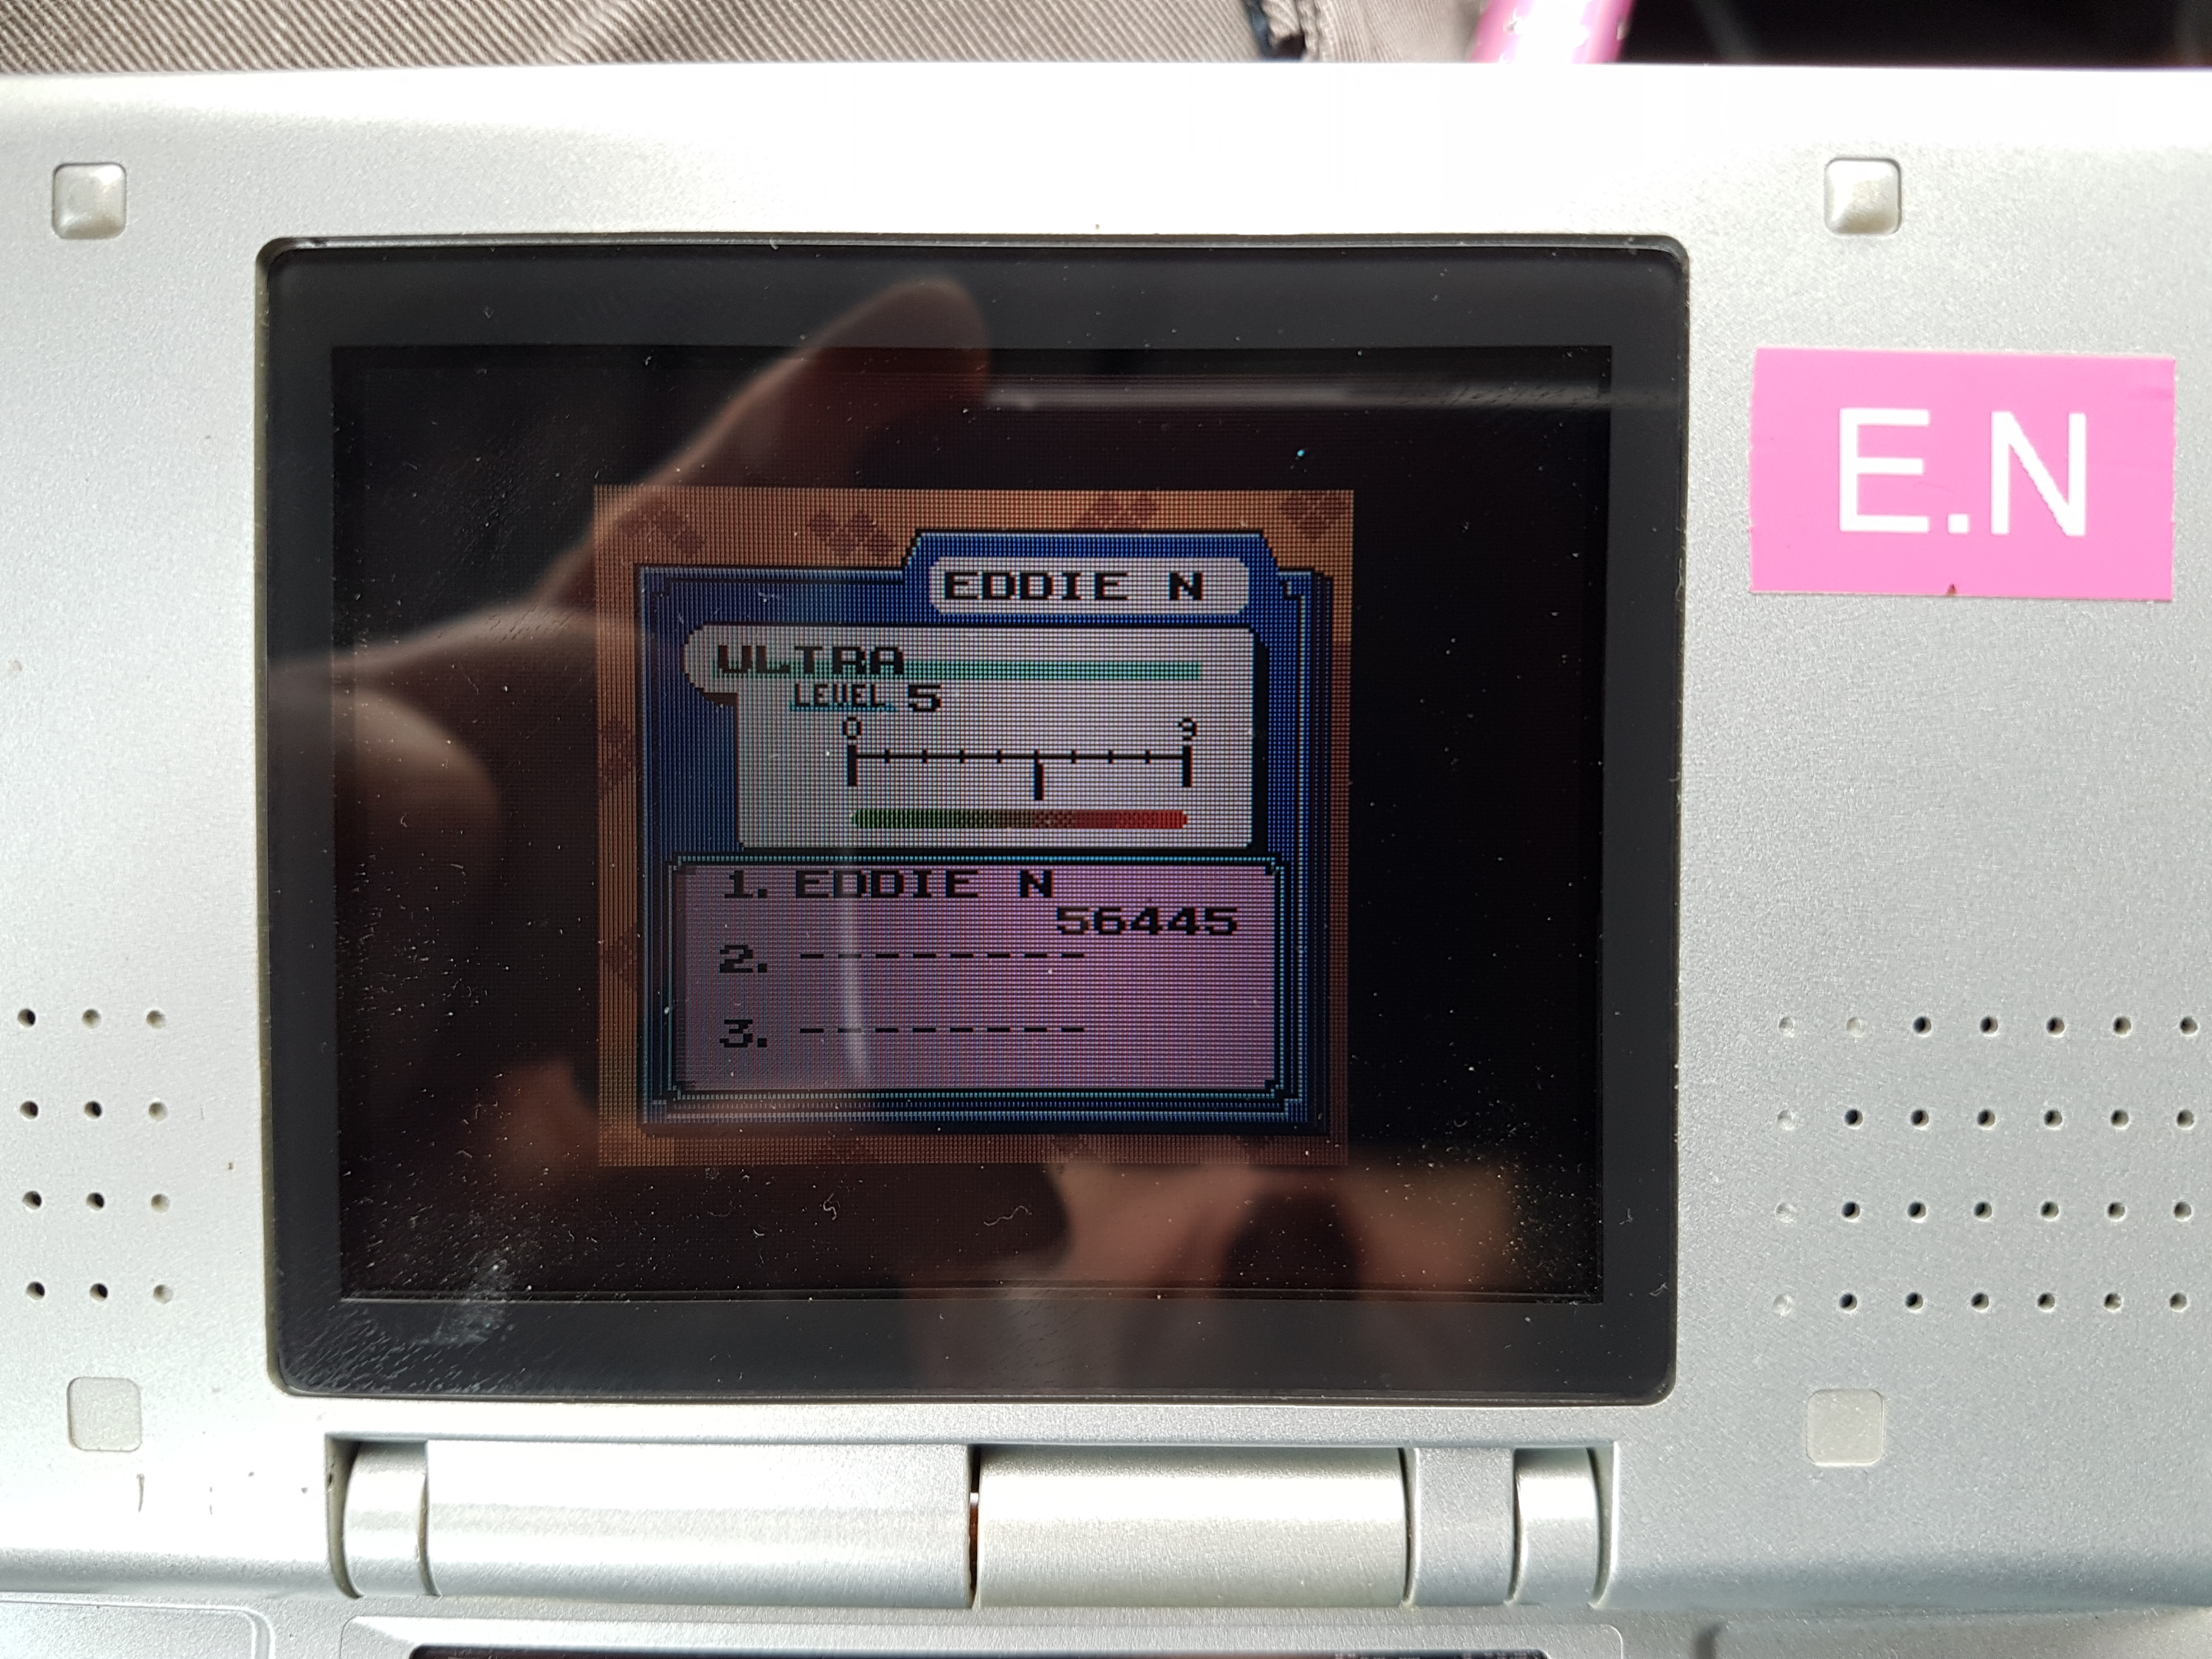 EddieNiceguy: Tetris DX: Ultra [Level 5] (Game Boy Color Emulated) 56,445 points on 2019-02-04 06:03:29